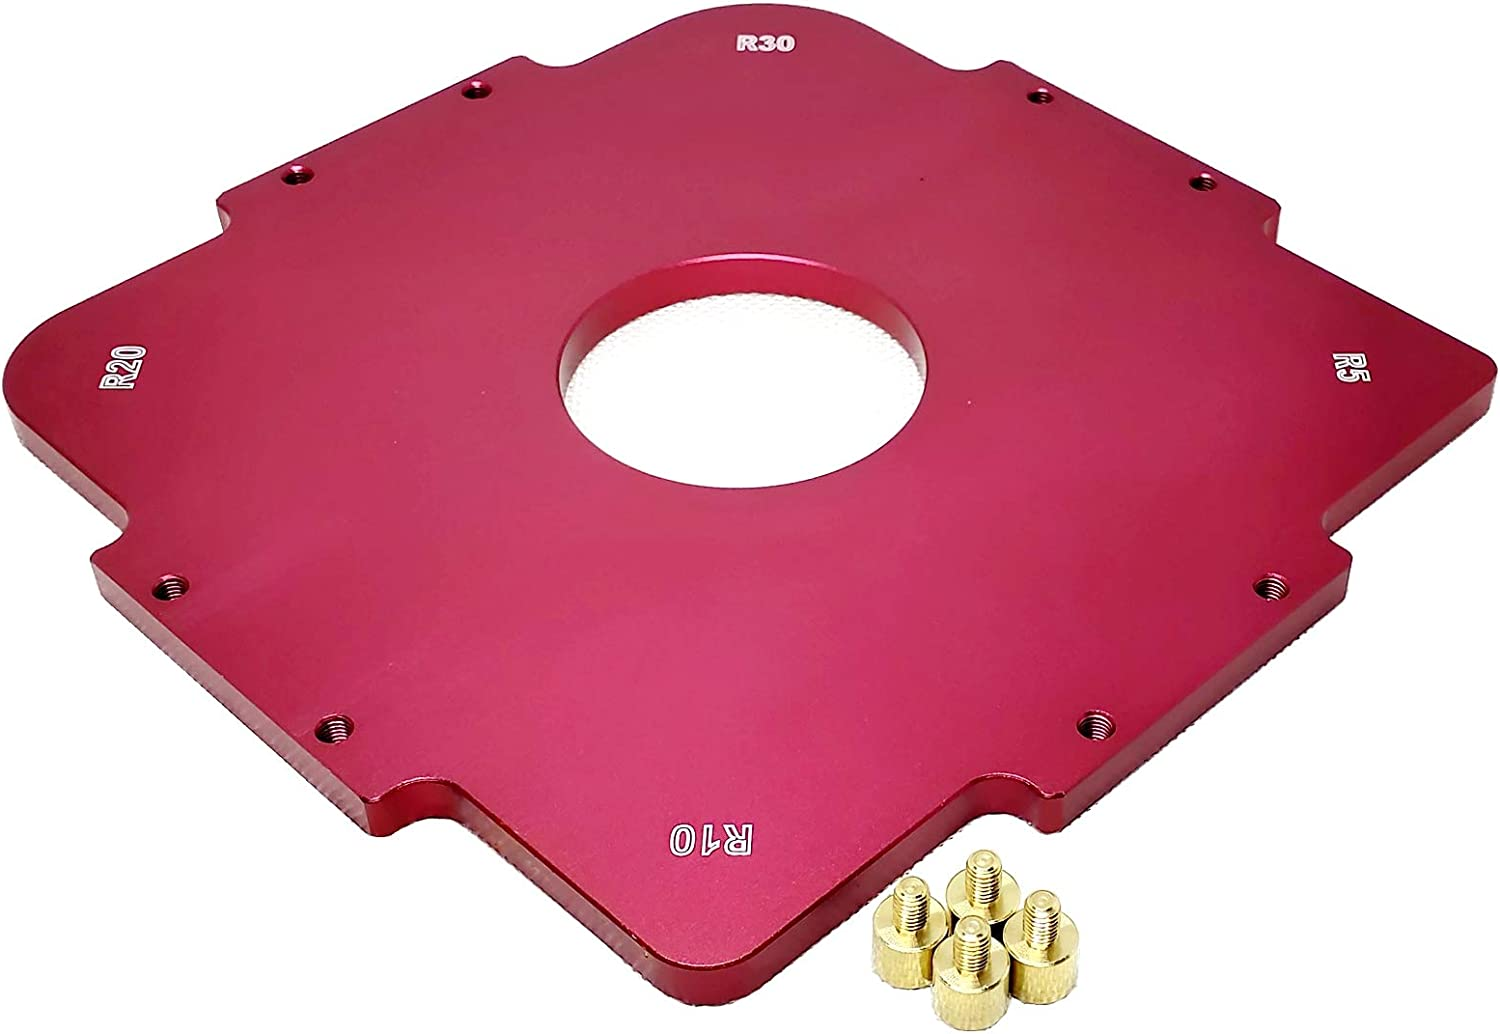 Aluminium Alloy Foam Insert Table Radius Quick-Jig Router Bit Templates For Routing Rounded Corners R5 R10 R20 R30